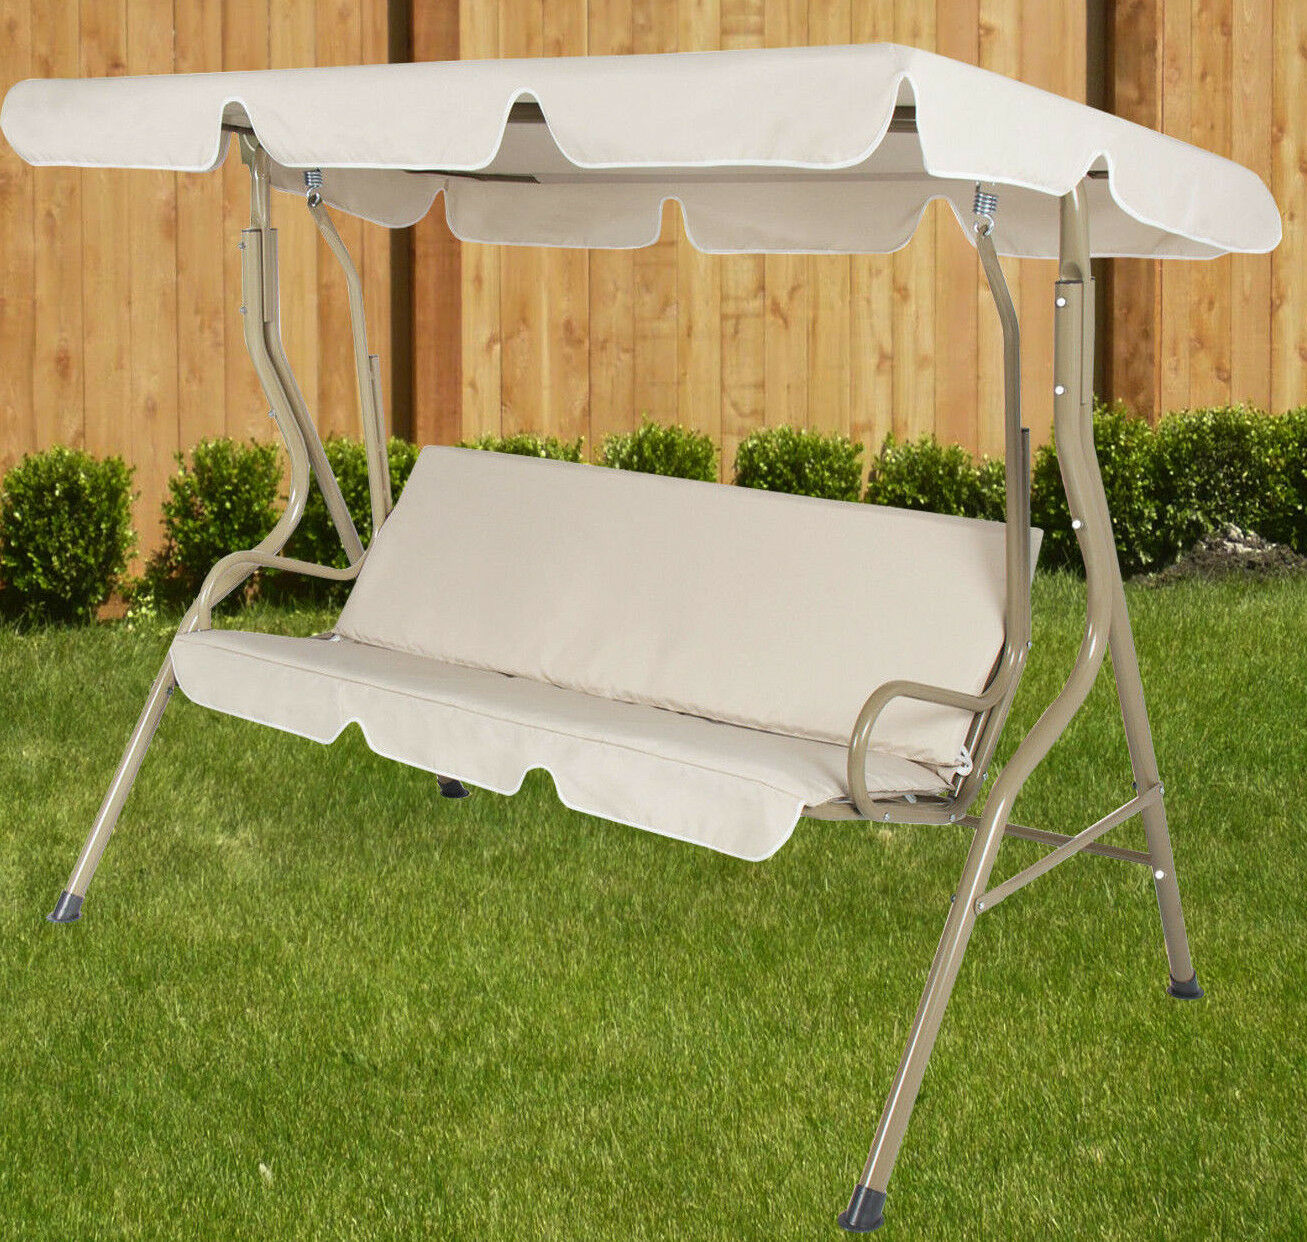 Outdoor Chair With Canopy Outdoor 2 Person Beige Canopy Swing Hammock Seat Backyard